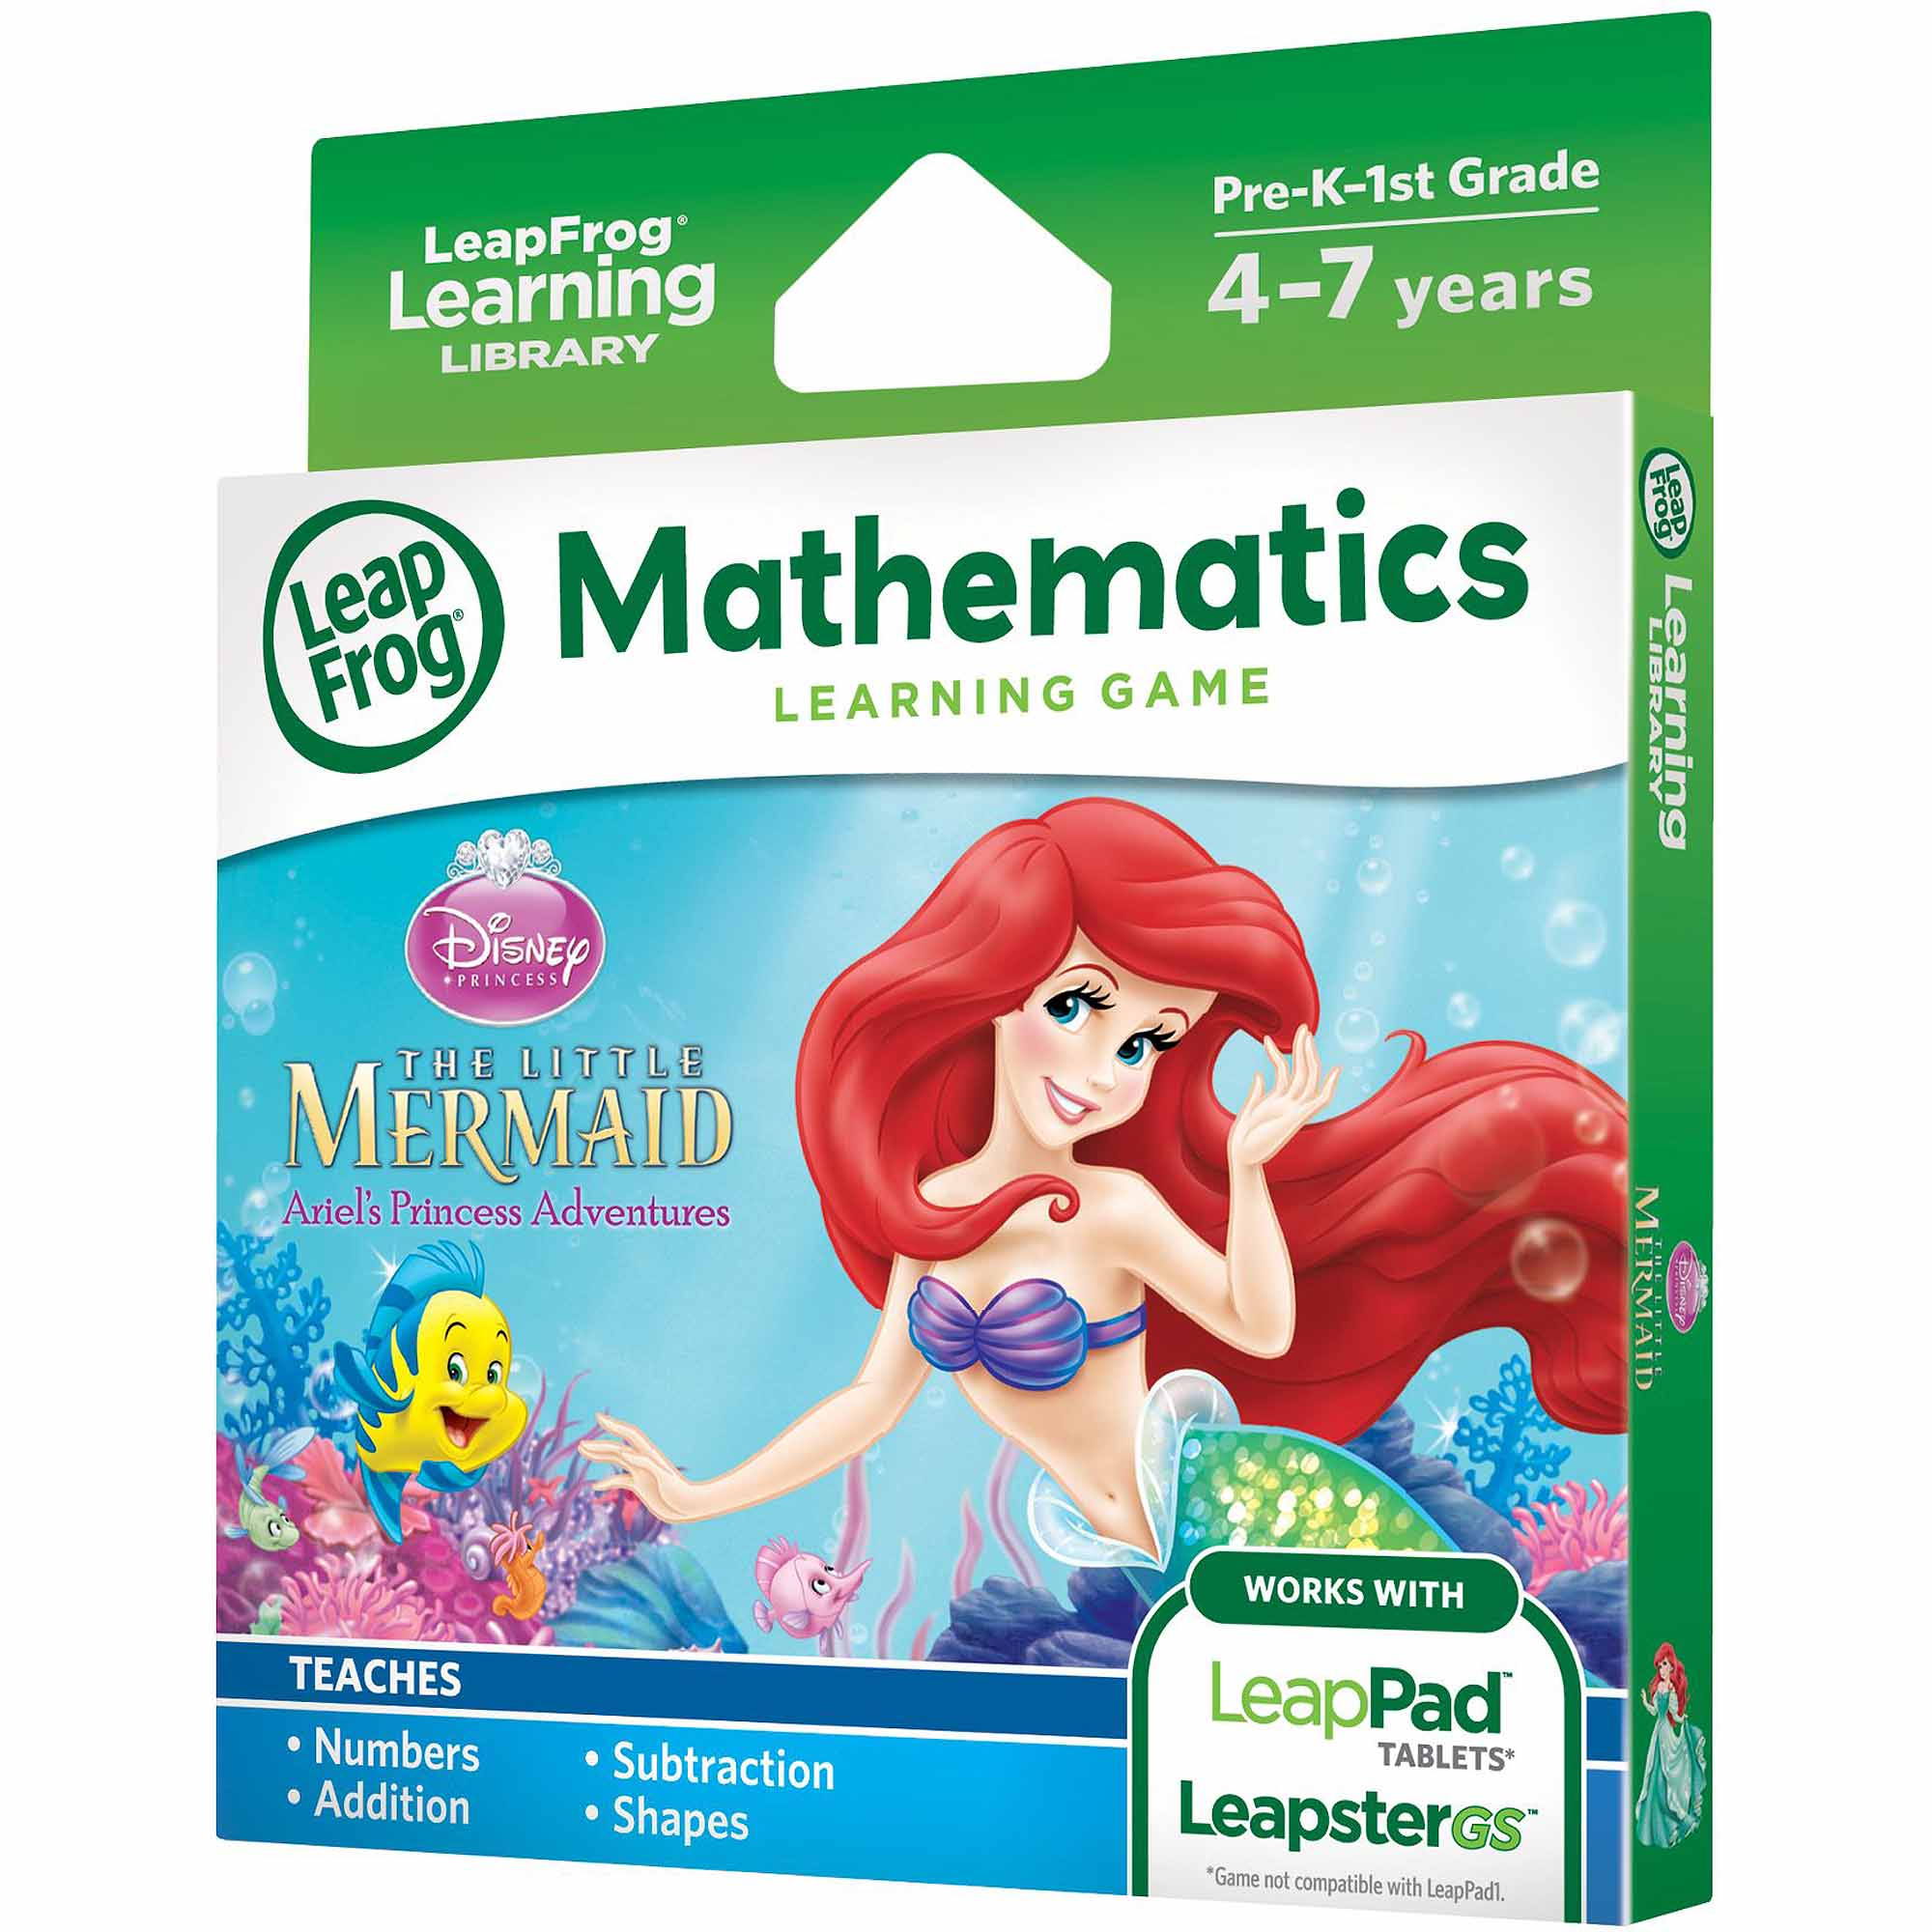 LeapFrog Disney The Little Mermaid Learning Game for LeapPad Tablets and LeapsterGS